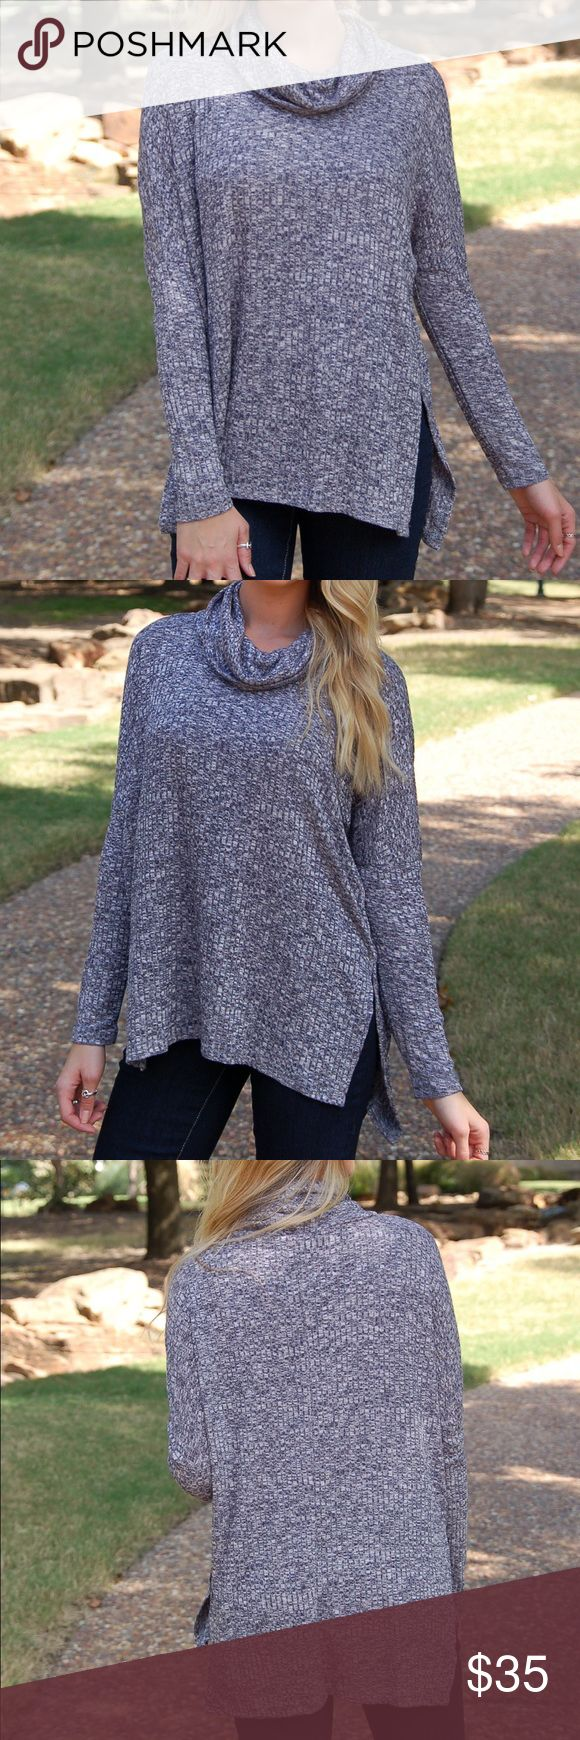 Super Comfy Navy Cowl Neck Top Lightweight Sweater This amazingly comfortable and lightweight slouchy top pairs perfectly with leggings and boots! Runs true to size for an oversized fit and model is wearing size small! Also available in beige in my closet! Paperback Boutique Tops